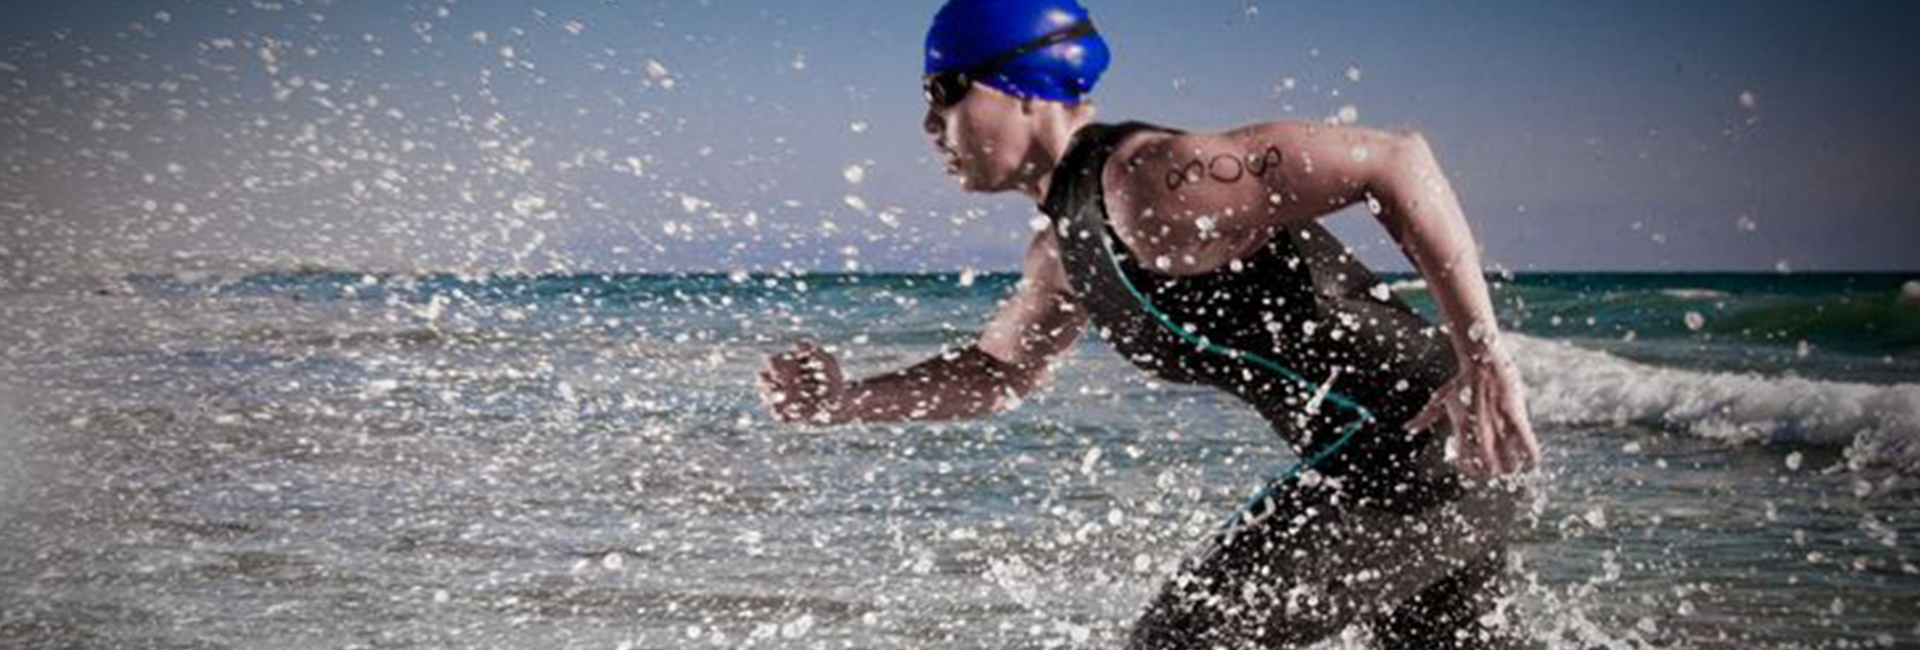 Athlete swimmer running through the water to begin the race